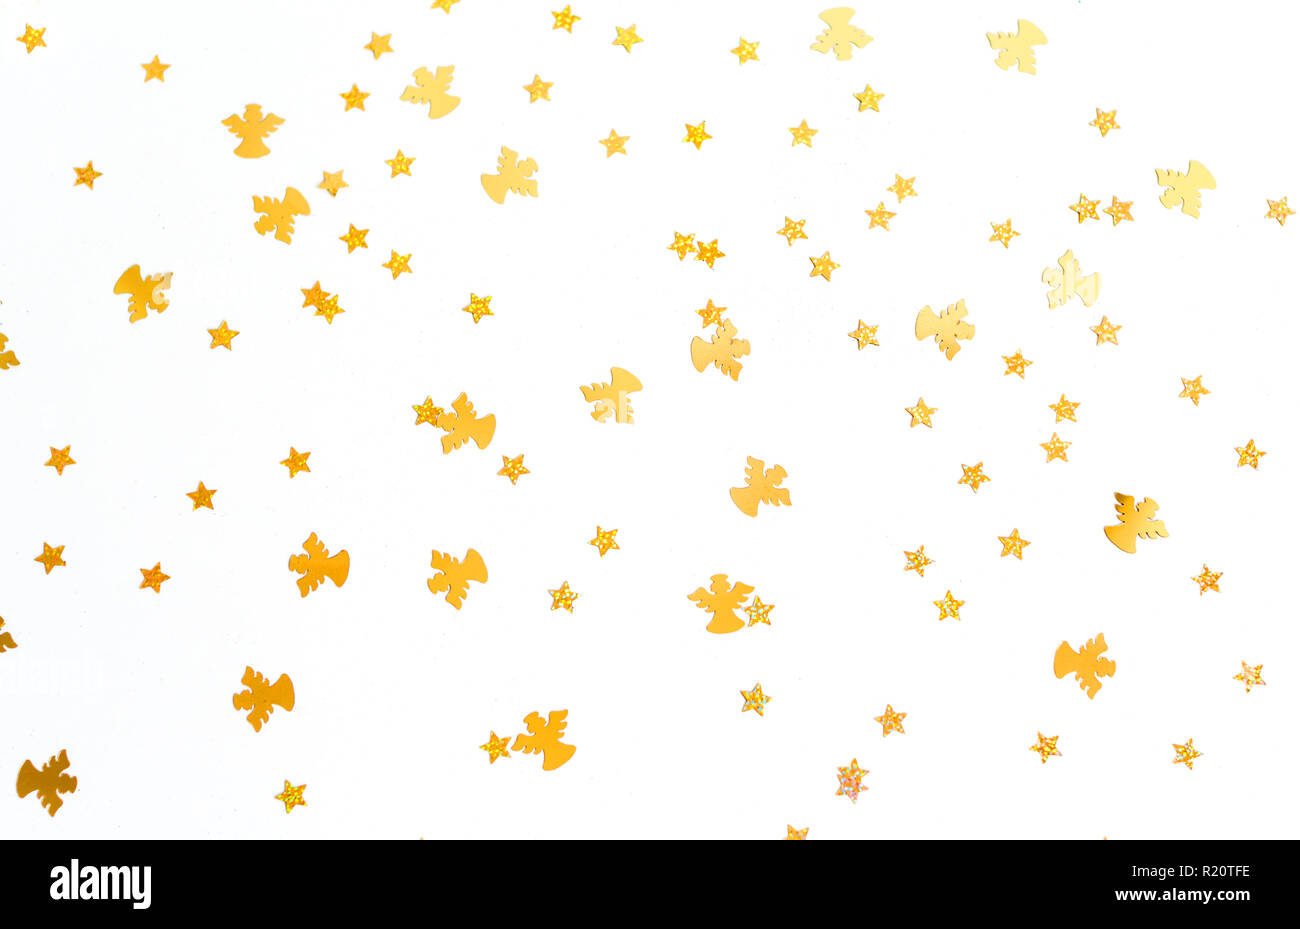 Angels Christmas Background.Christmas Background Golden Angels And Stars On White